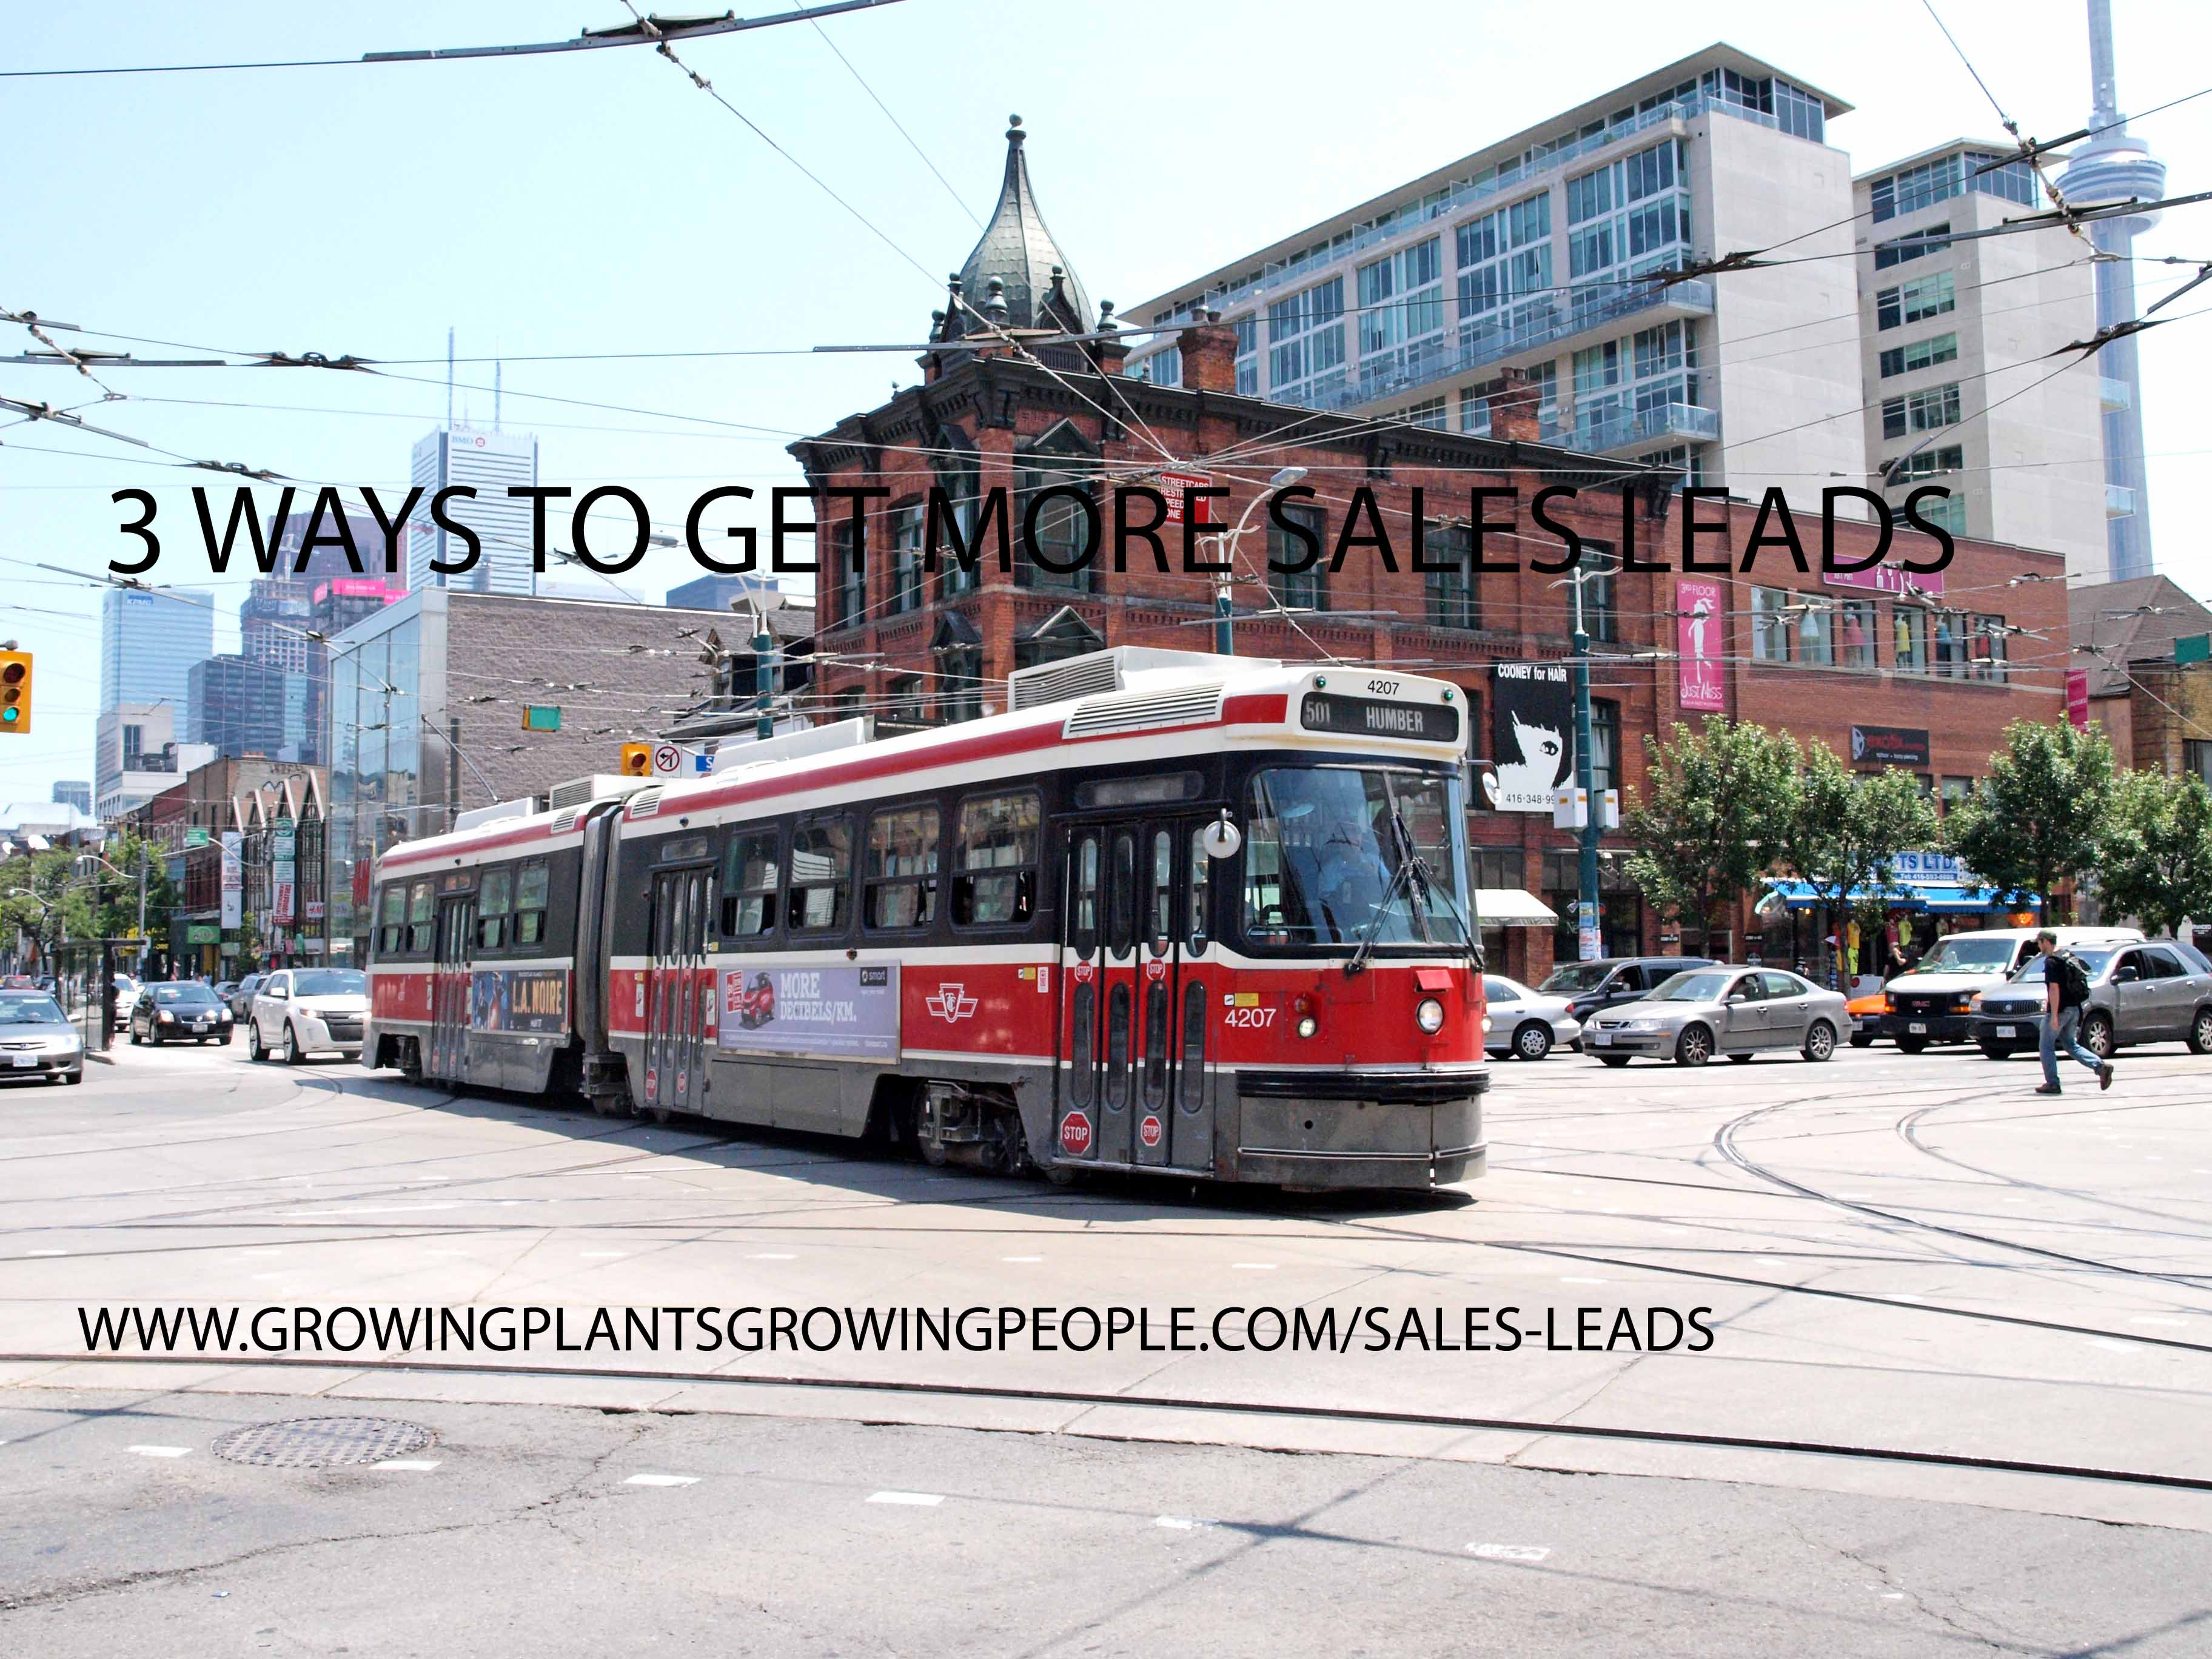 3 Ways to Get More Sales Leads